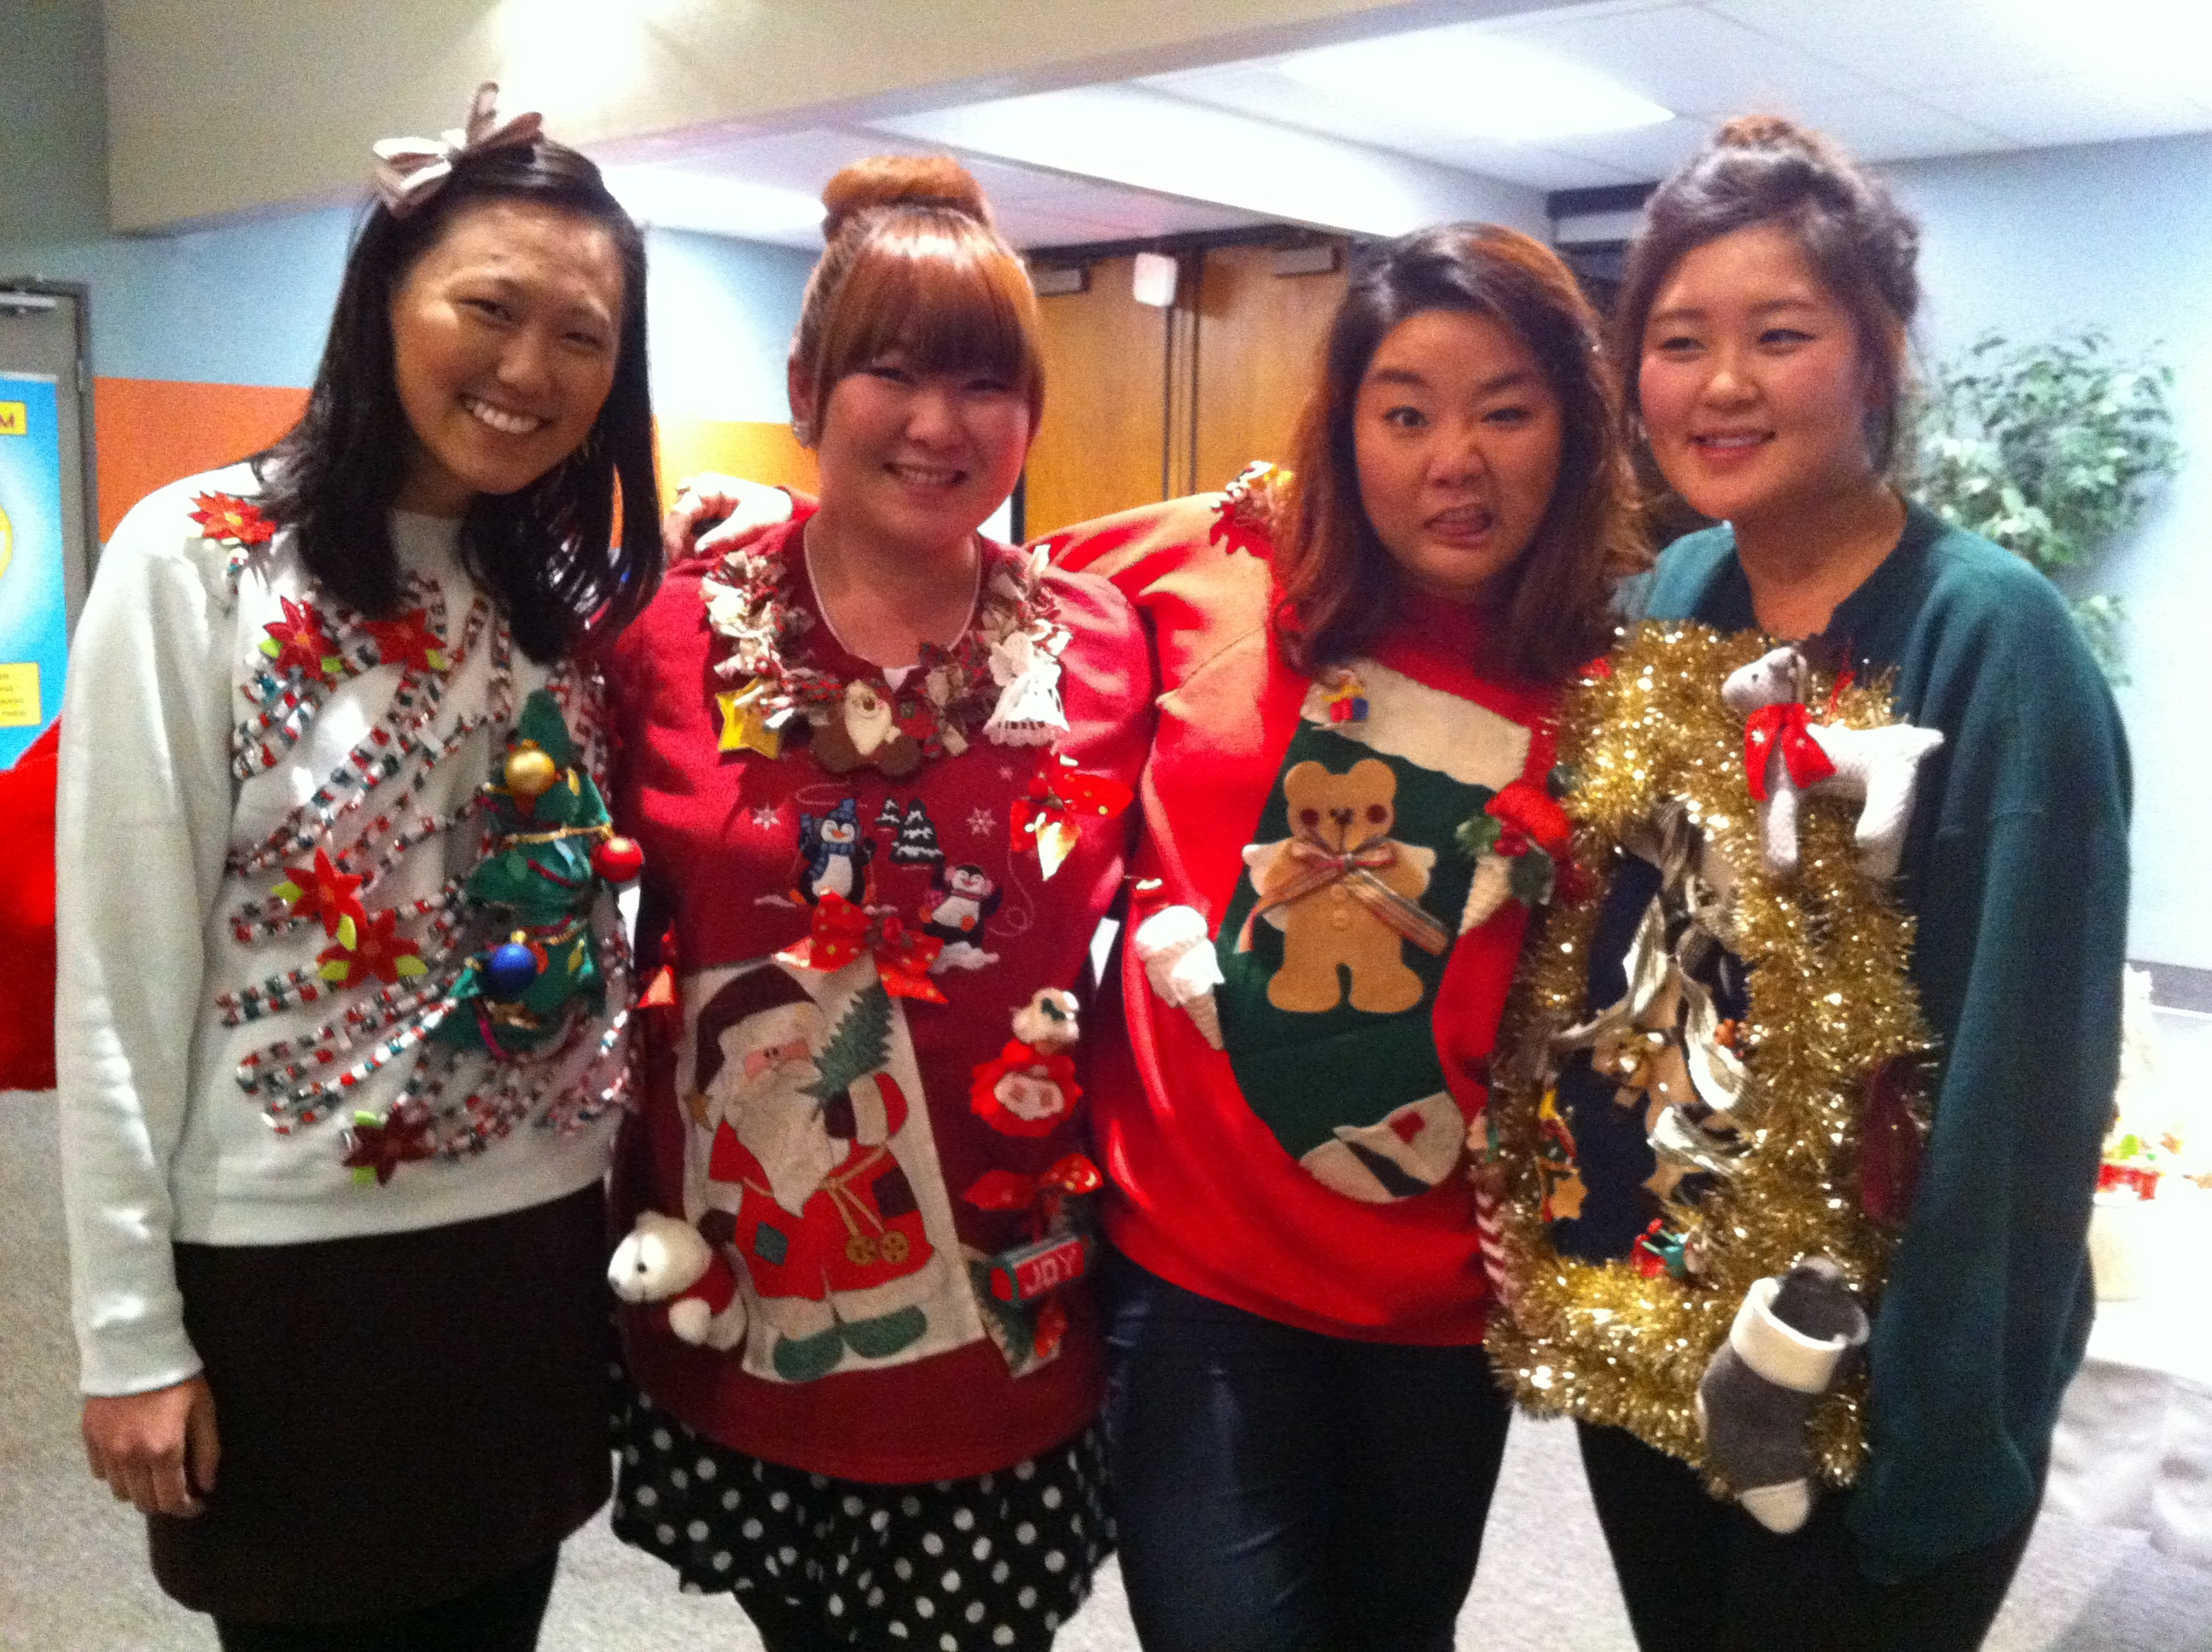 1 the ugly sweater party